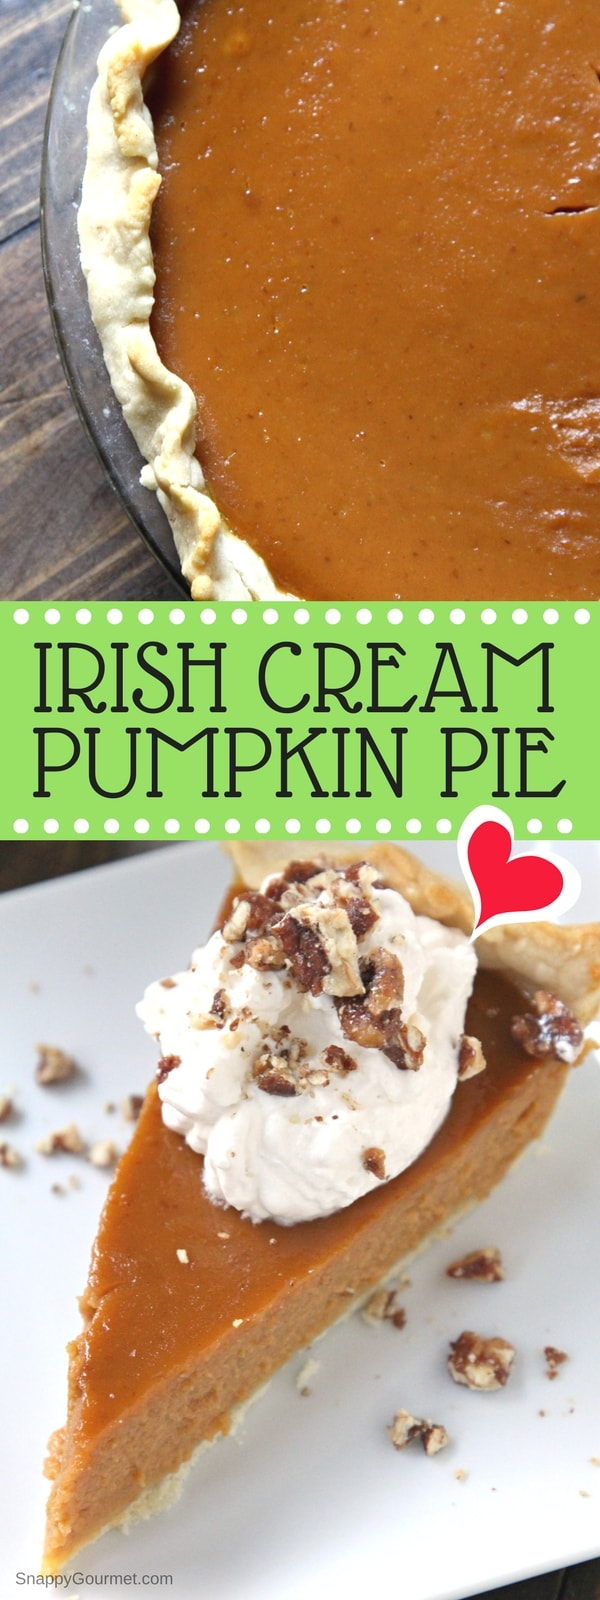 IRISH CREAM PUMPKIN PIE RECIPE - easy homemade pumpkin pie with Bailey's and from scratch pie crust!